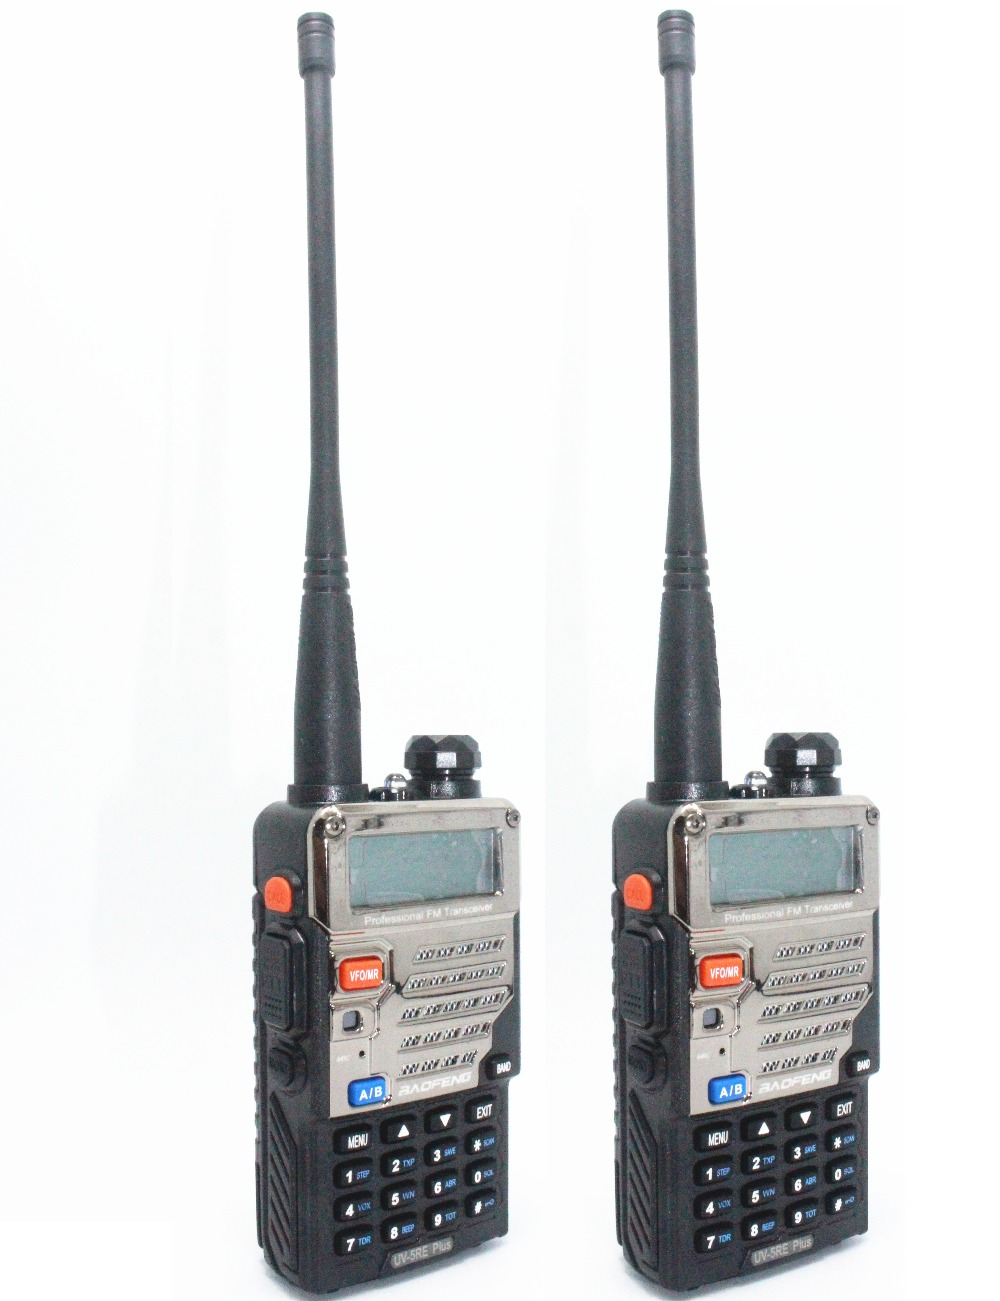 2pcs BaoFeng Walkie Talkie UV 5RE Plus Black Ham Amateur Two Way Radio Dual Band 136